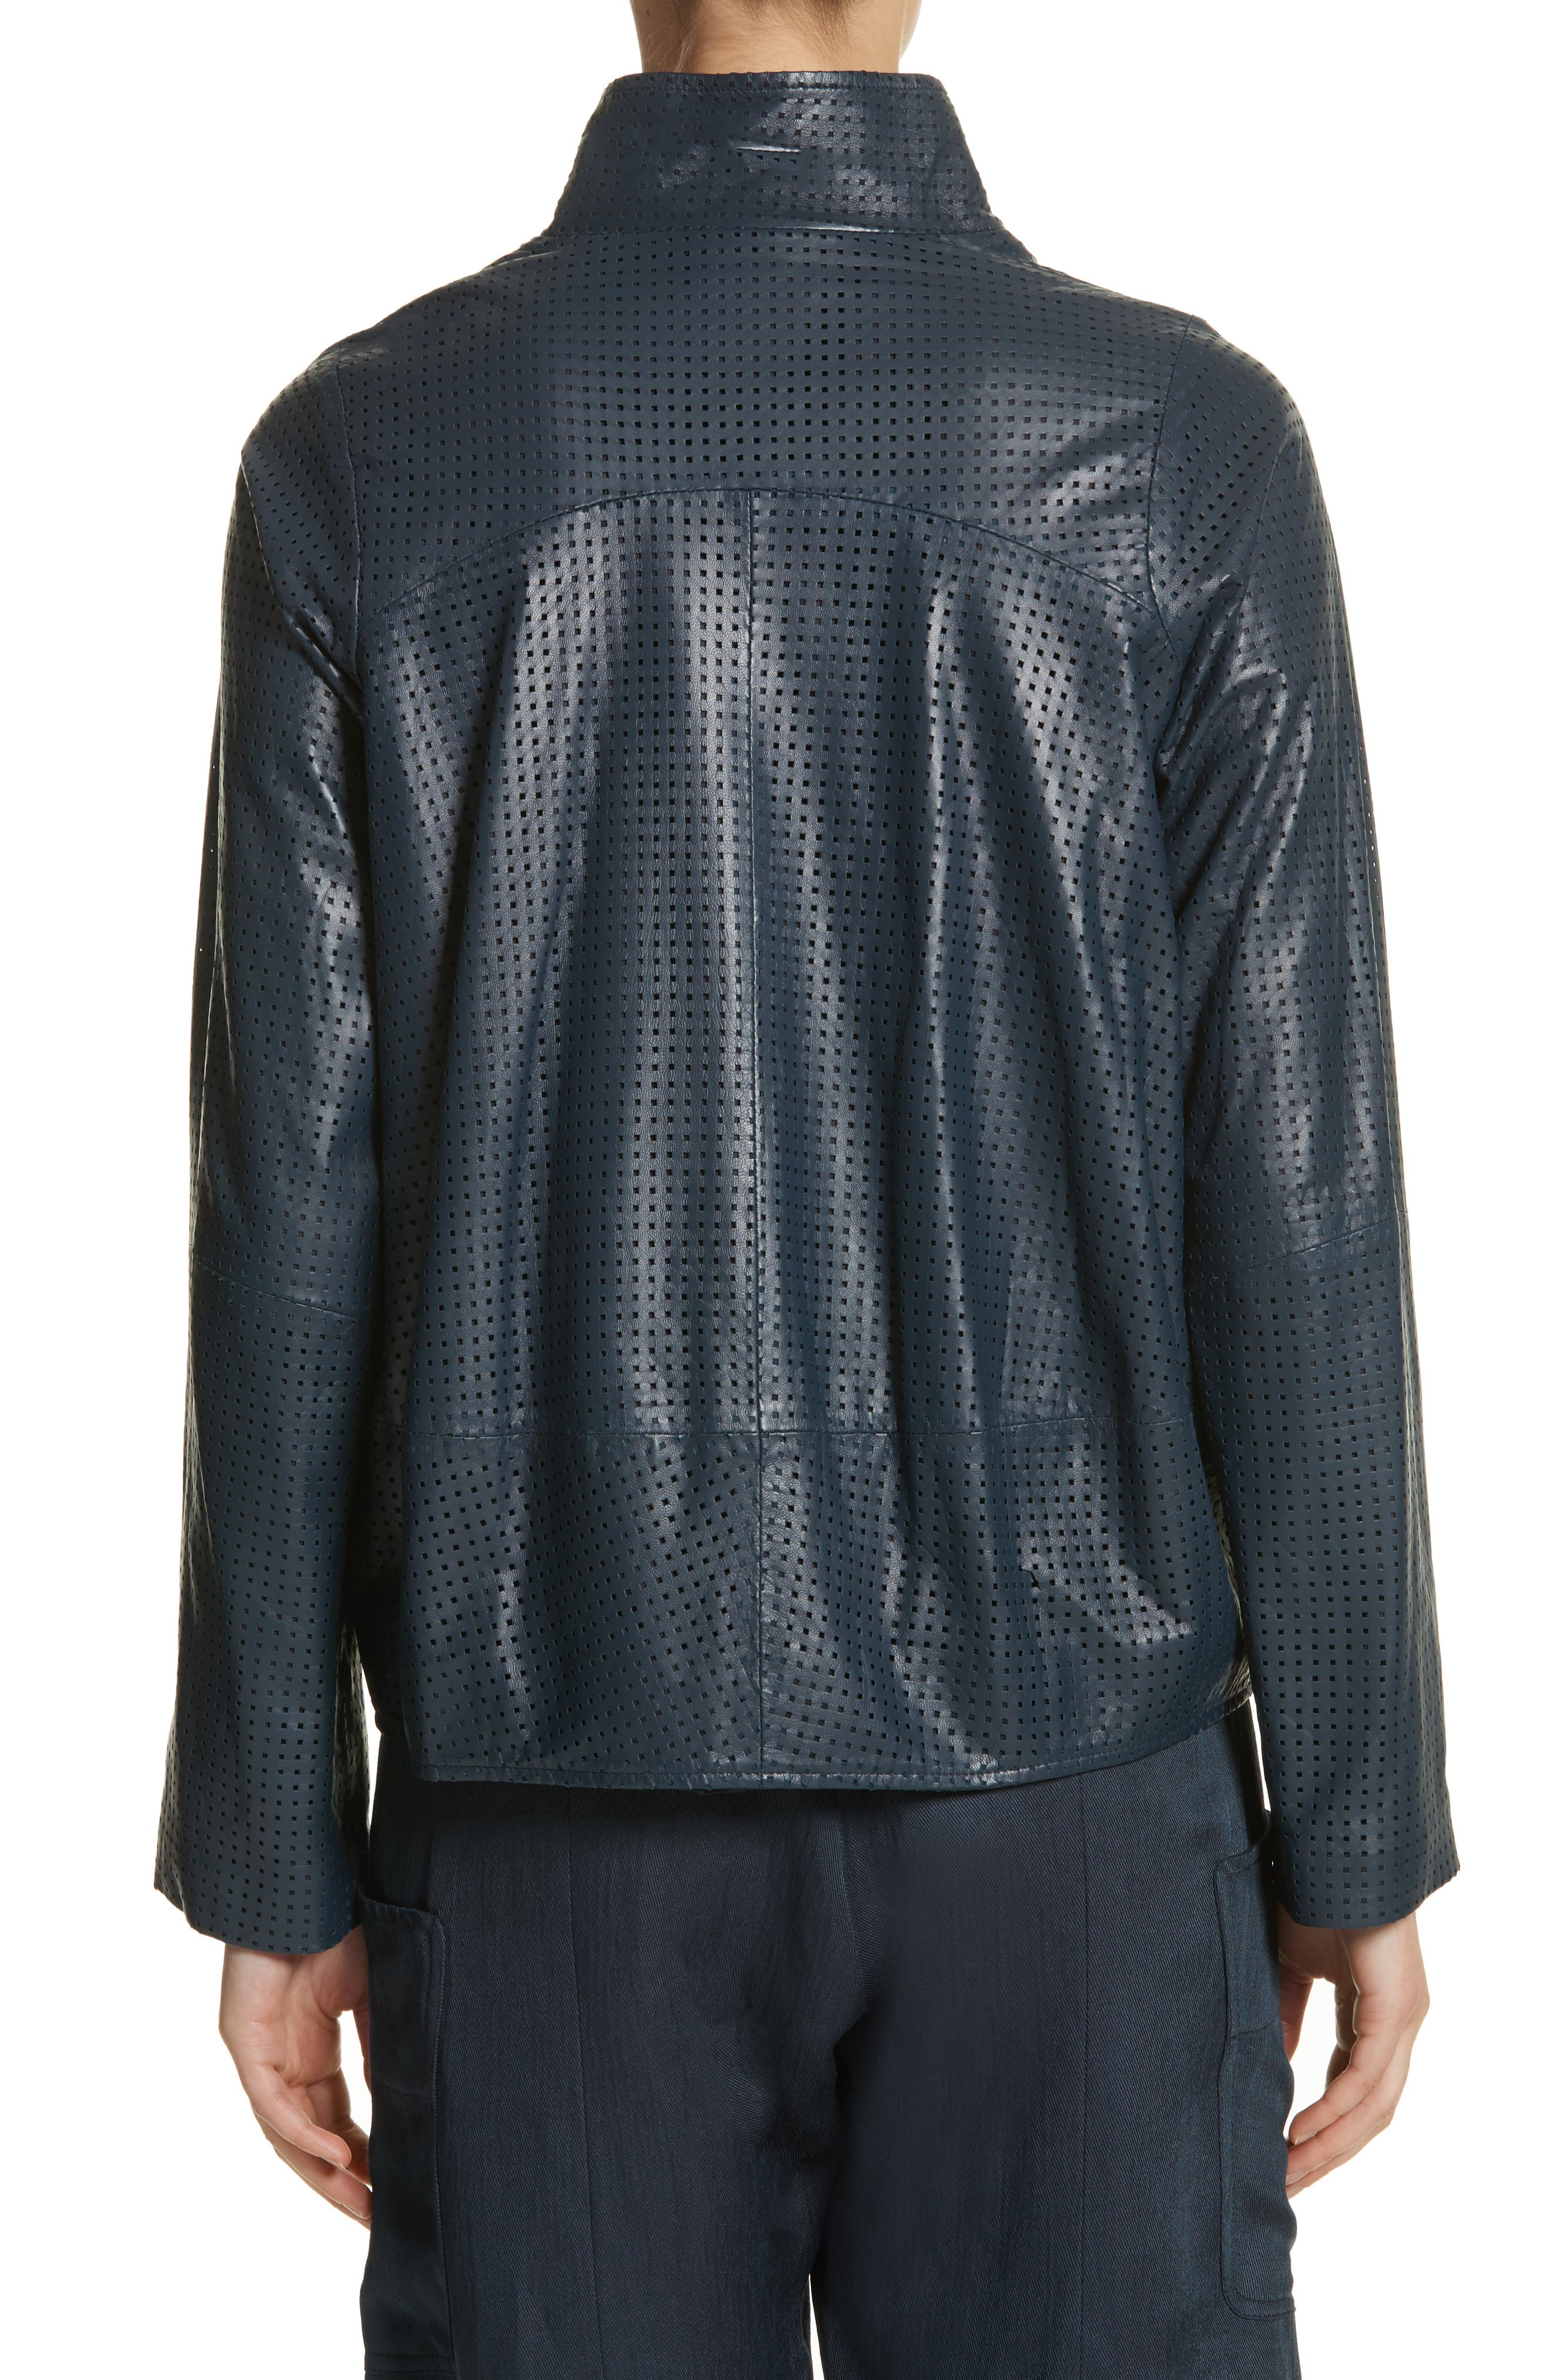 Perforated Nappa Leather Jacket,                             Alternate thumbnail 2, color,                             400